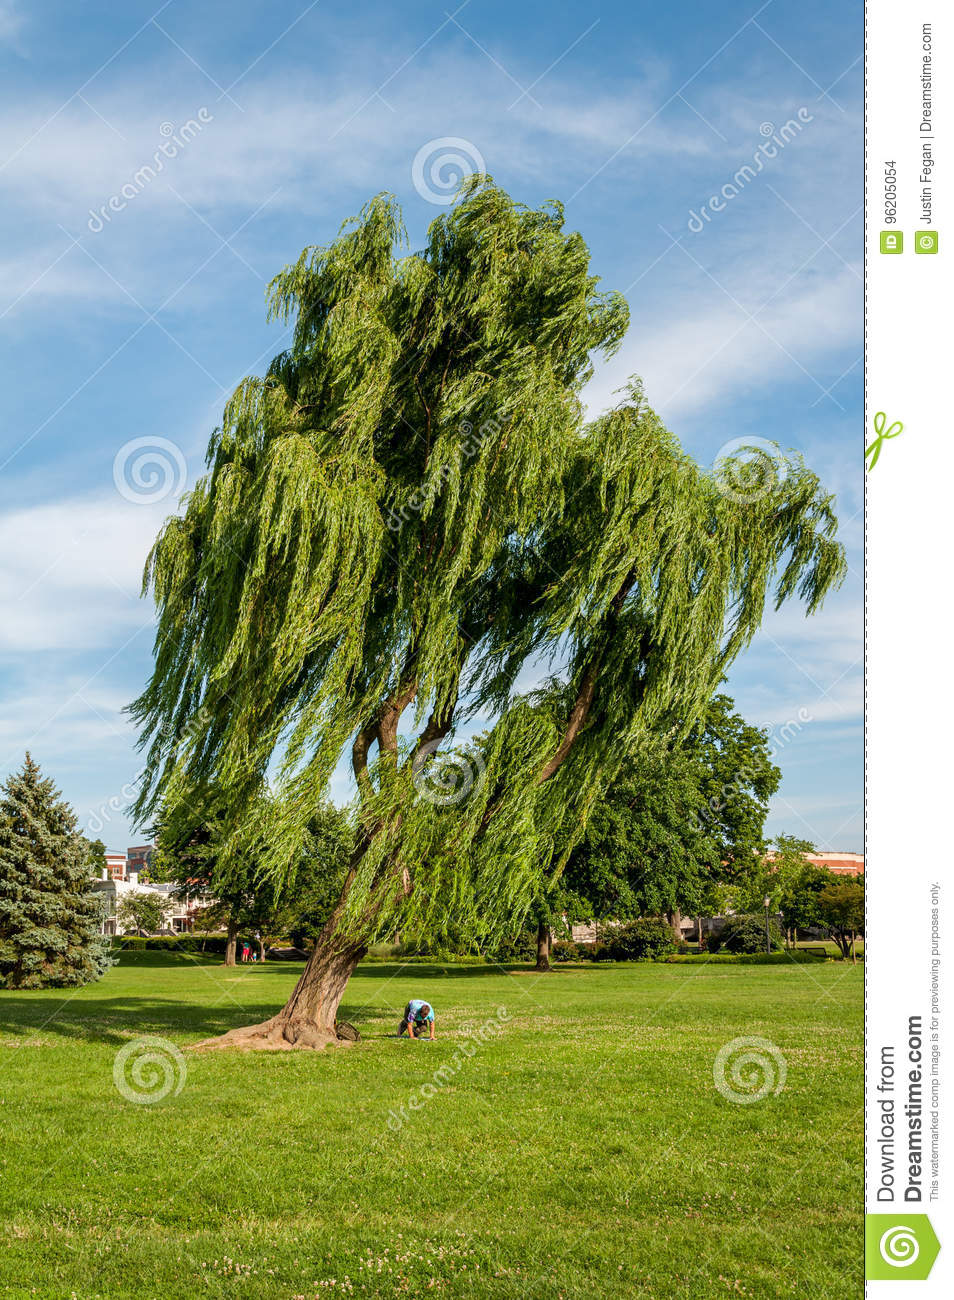 Leaning Weeping Willow Tree in Baker Park - Frederick, Maryland